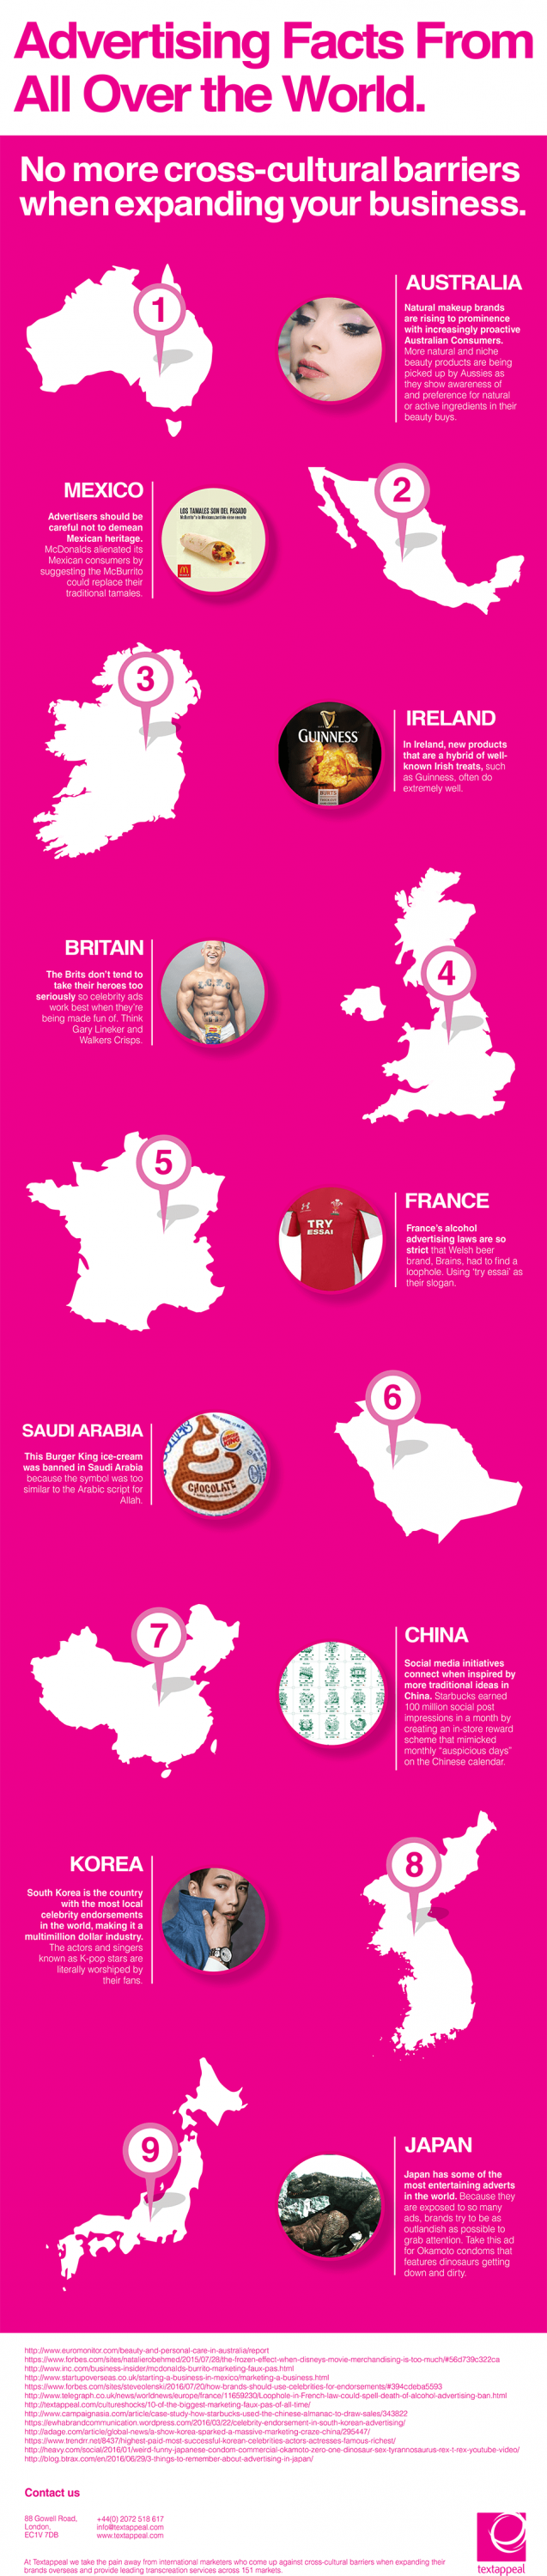 Advertising facts from all over the world - textappeal infographic